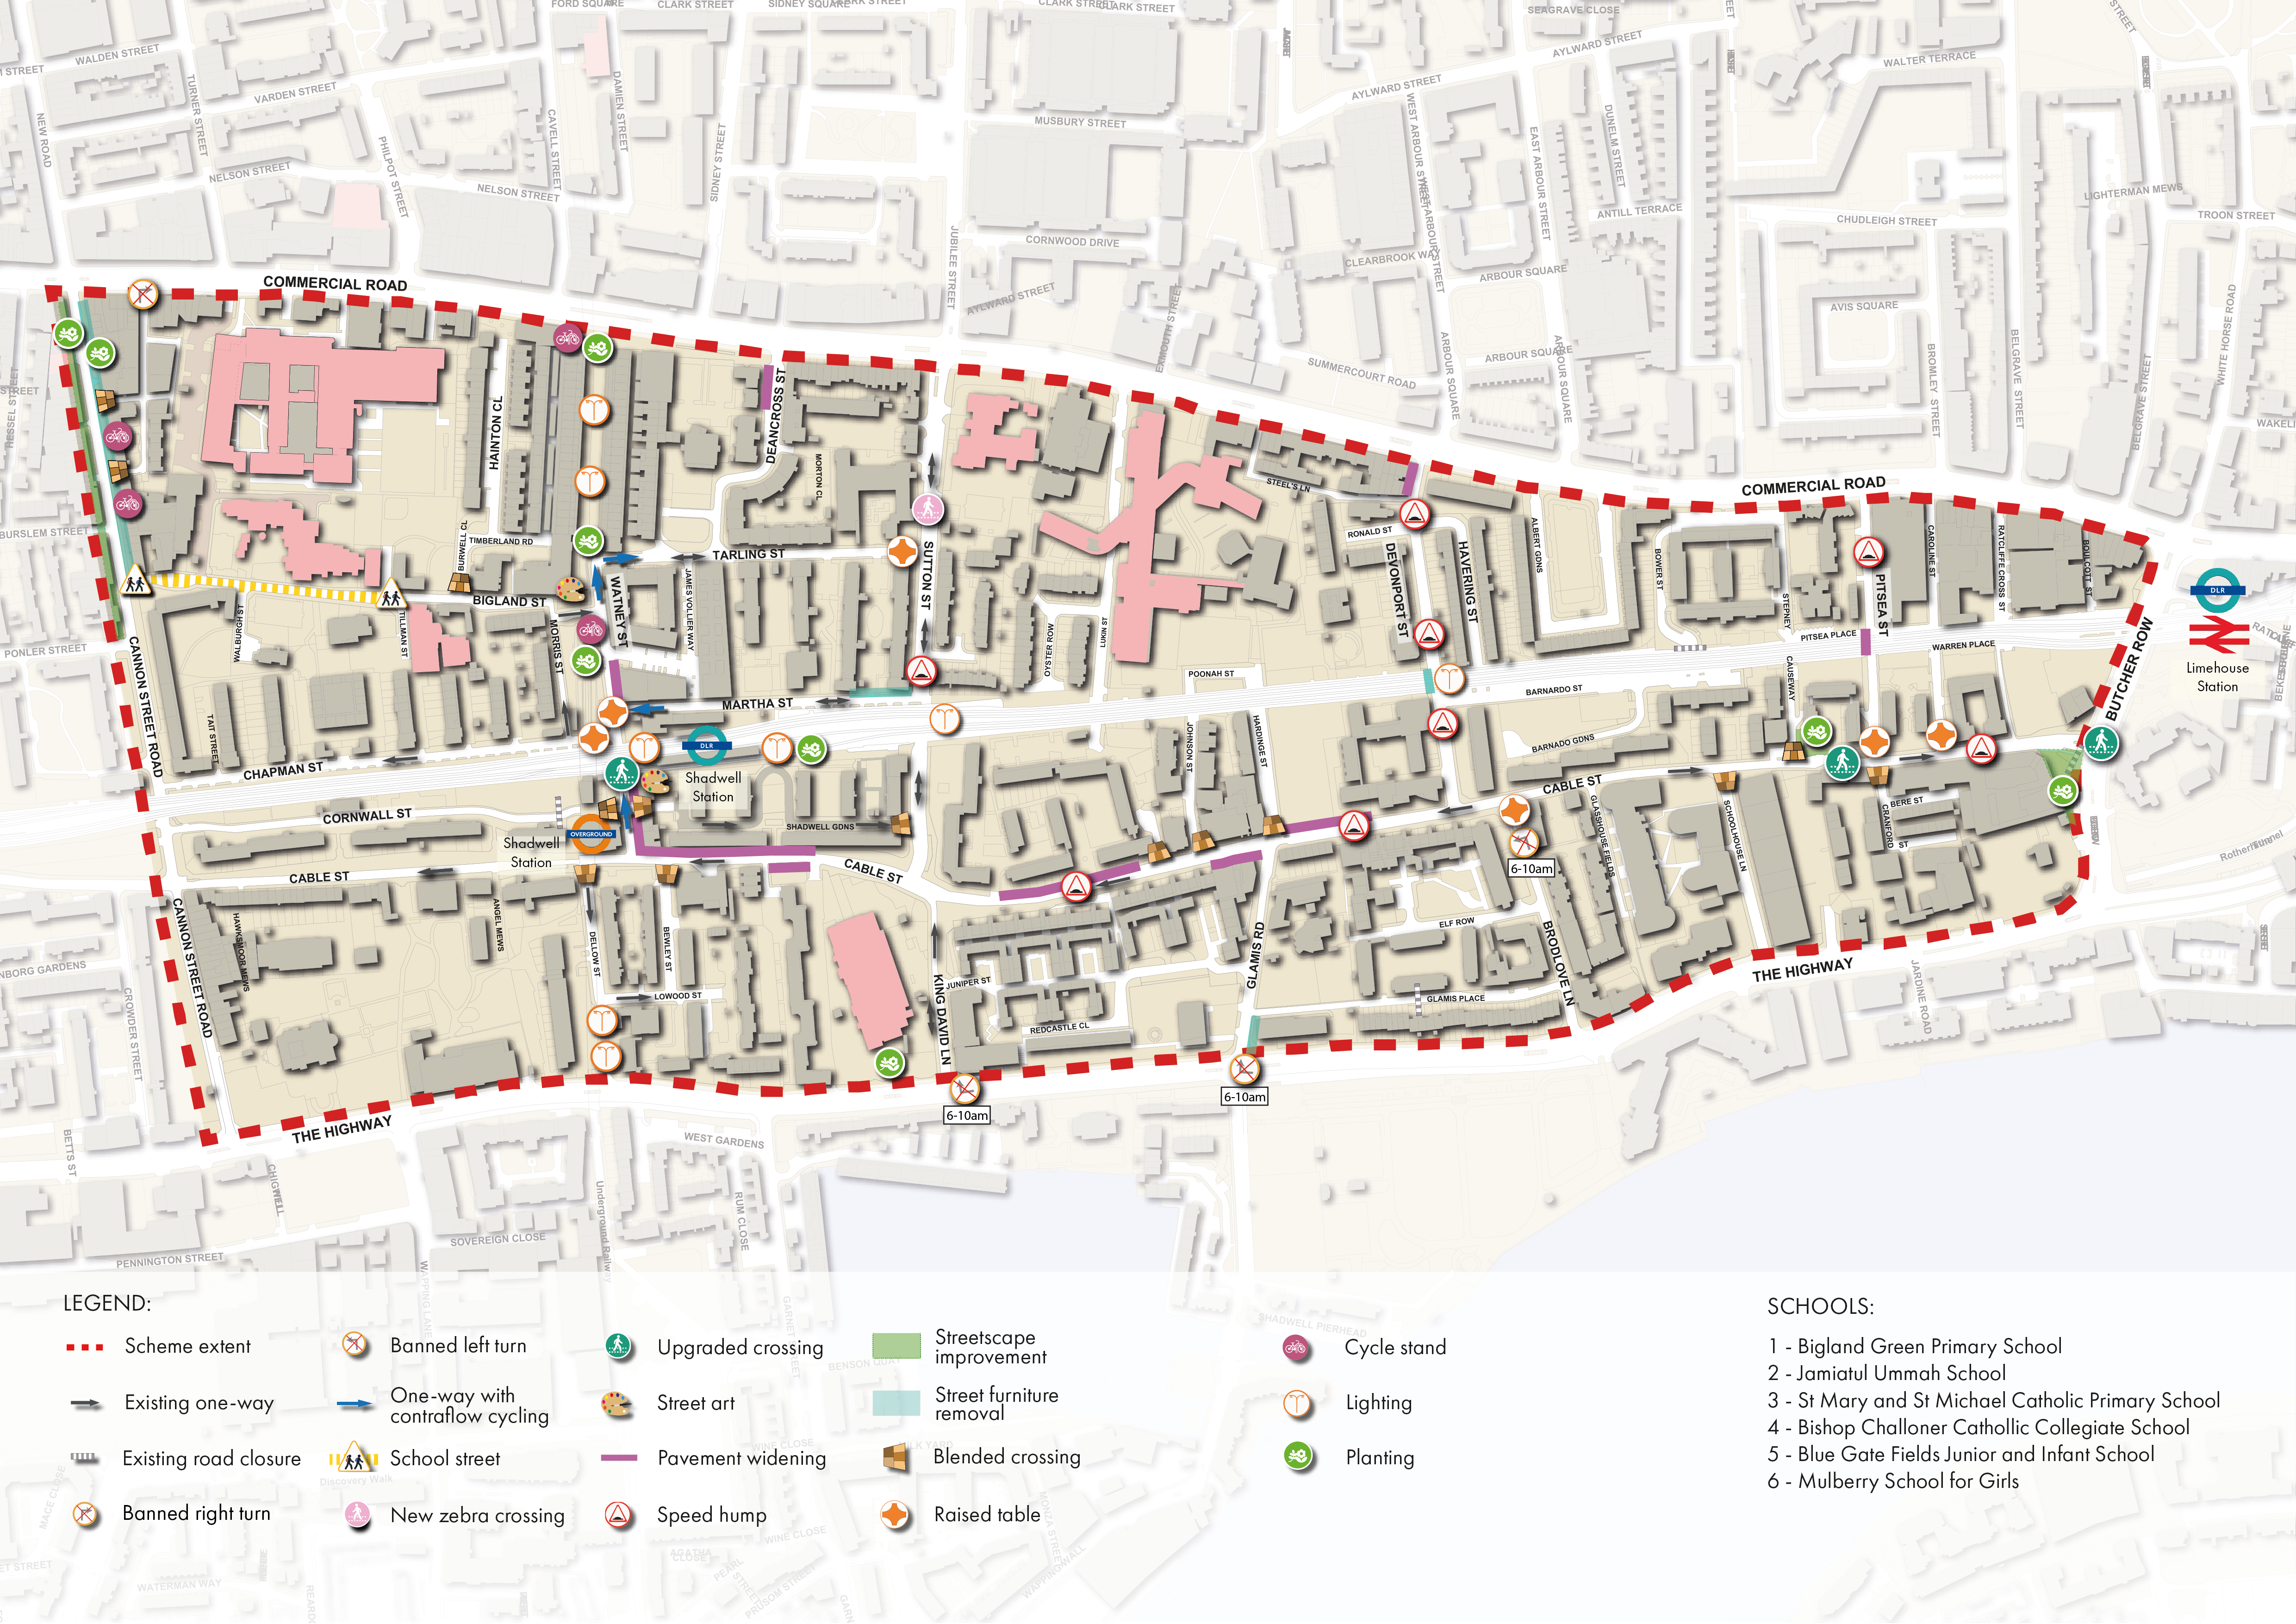 An Overview map of the Shadwell proposals